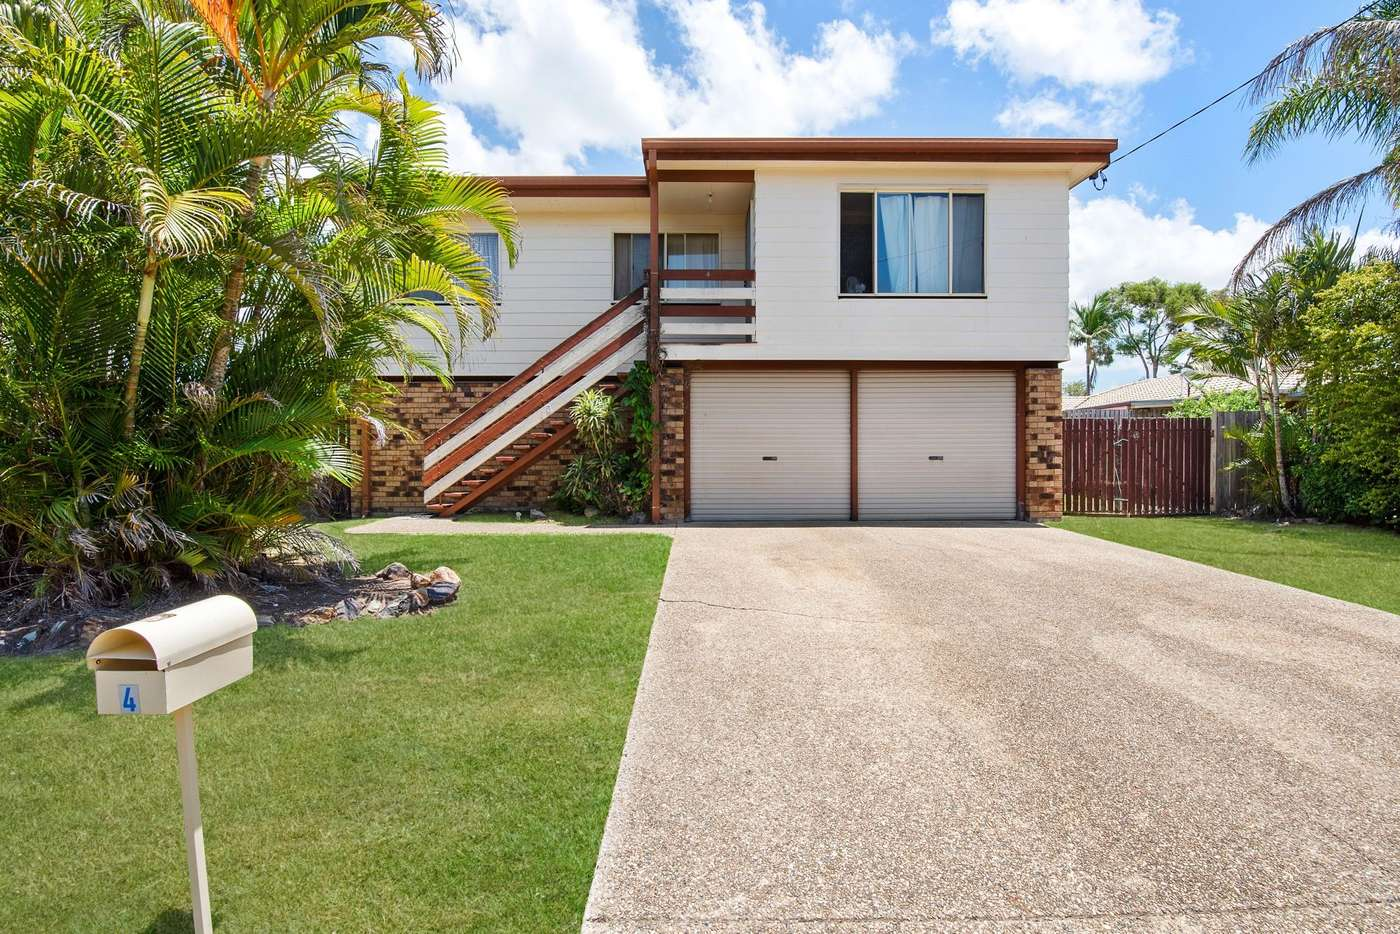 Main view of Homely house listing, 4 Shearwater Court, Deception Bay QLD 4508